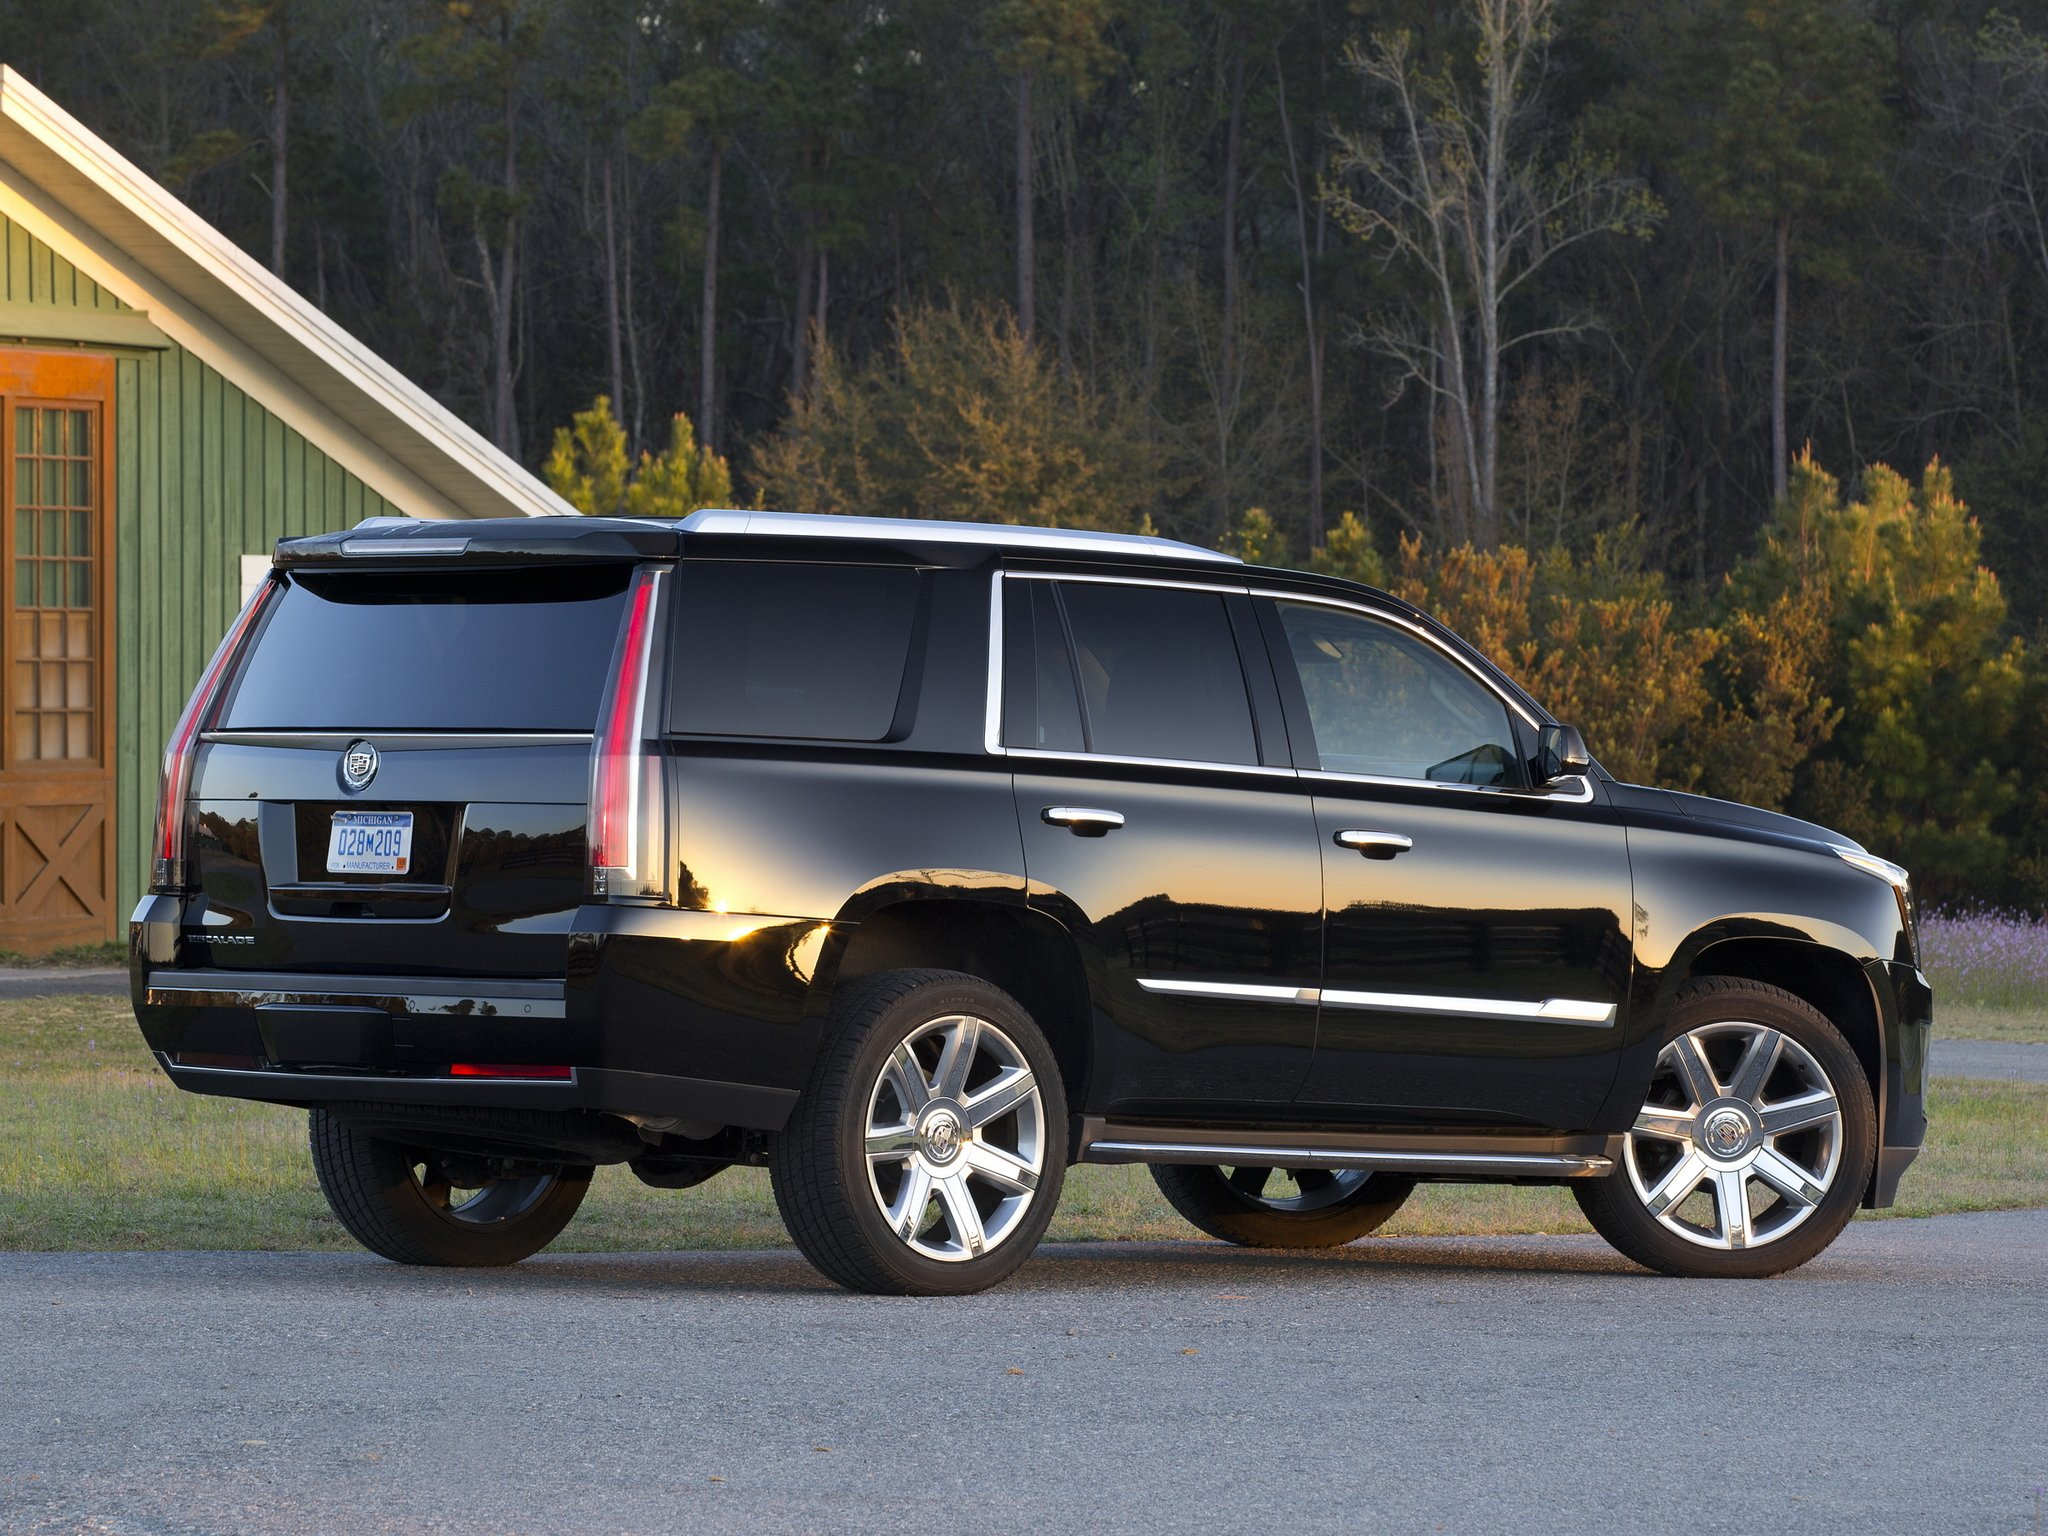 2015 cadillac escalade suv luxury g wallpaper 2048x1536 332232 wallpaperup. Black Bedroom Furniture Sets. Home Design Ideas